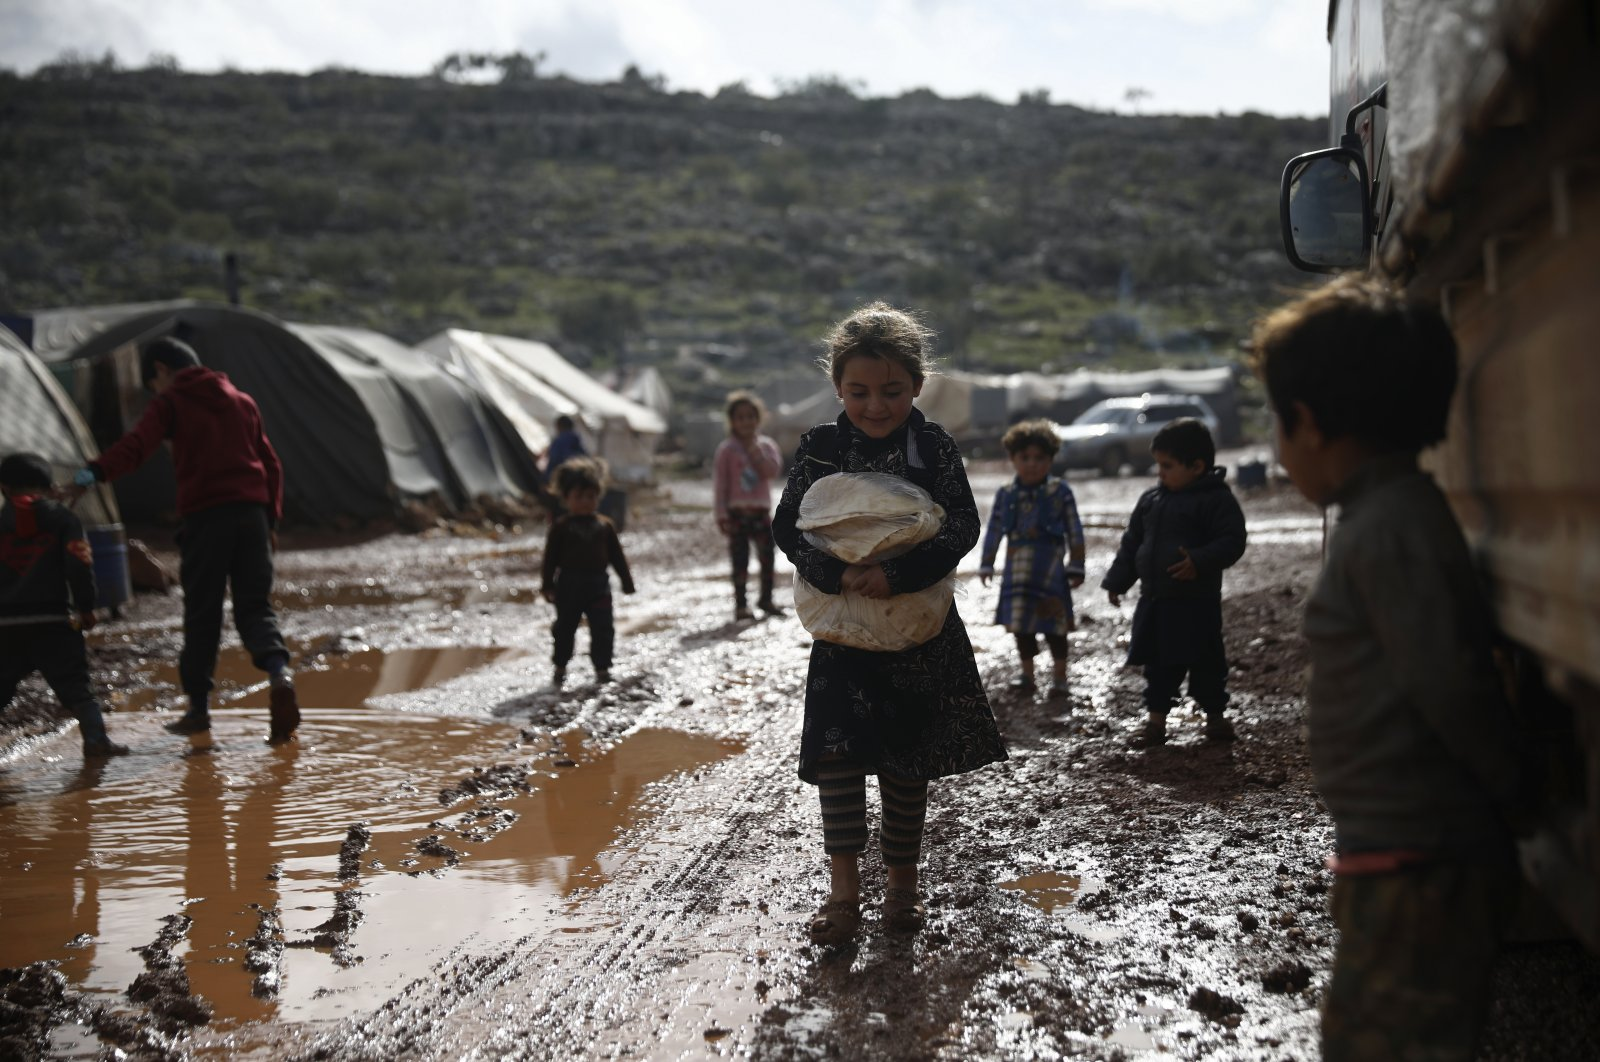 Syrian refugees walk through a camp for displaced people muddied by recent rains, in Idlib province, Syria, Jan. 28, 2021. (AP)